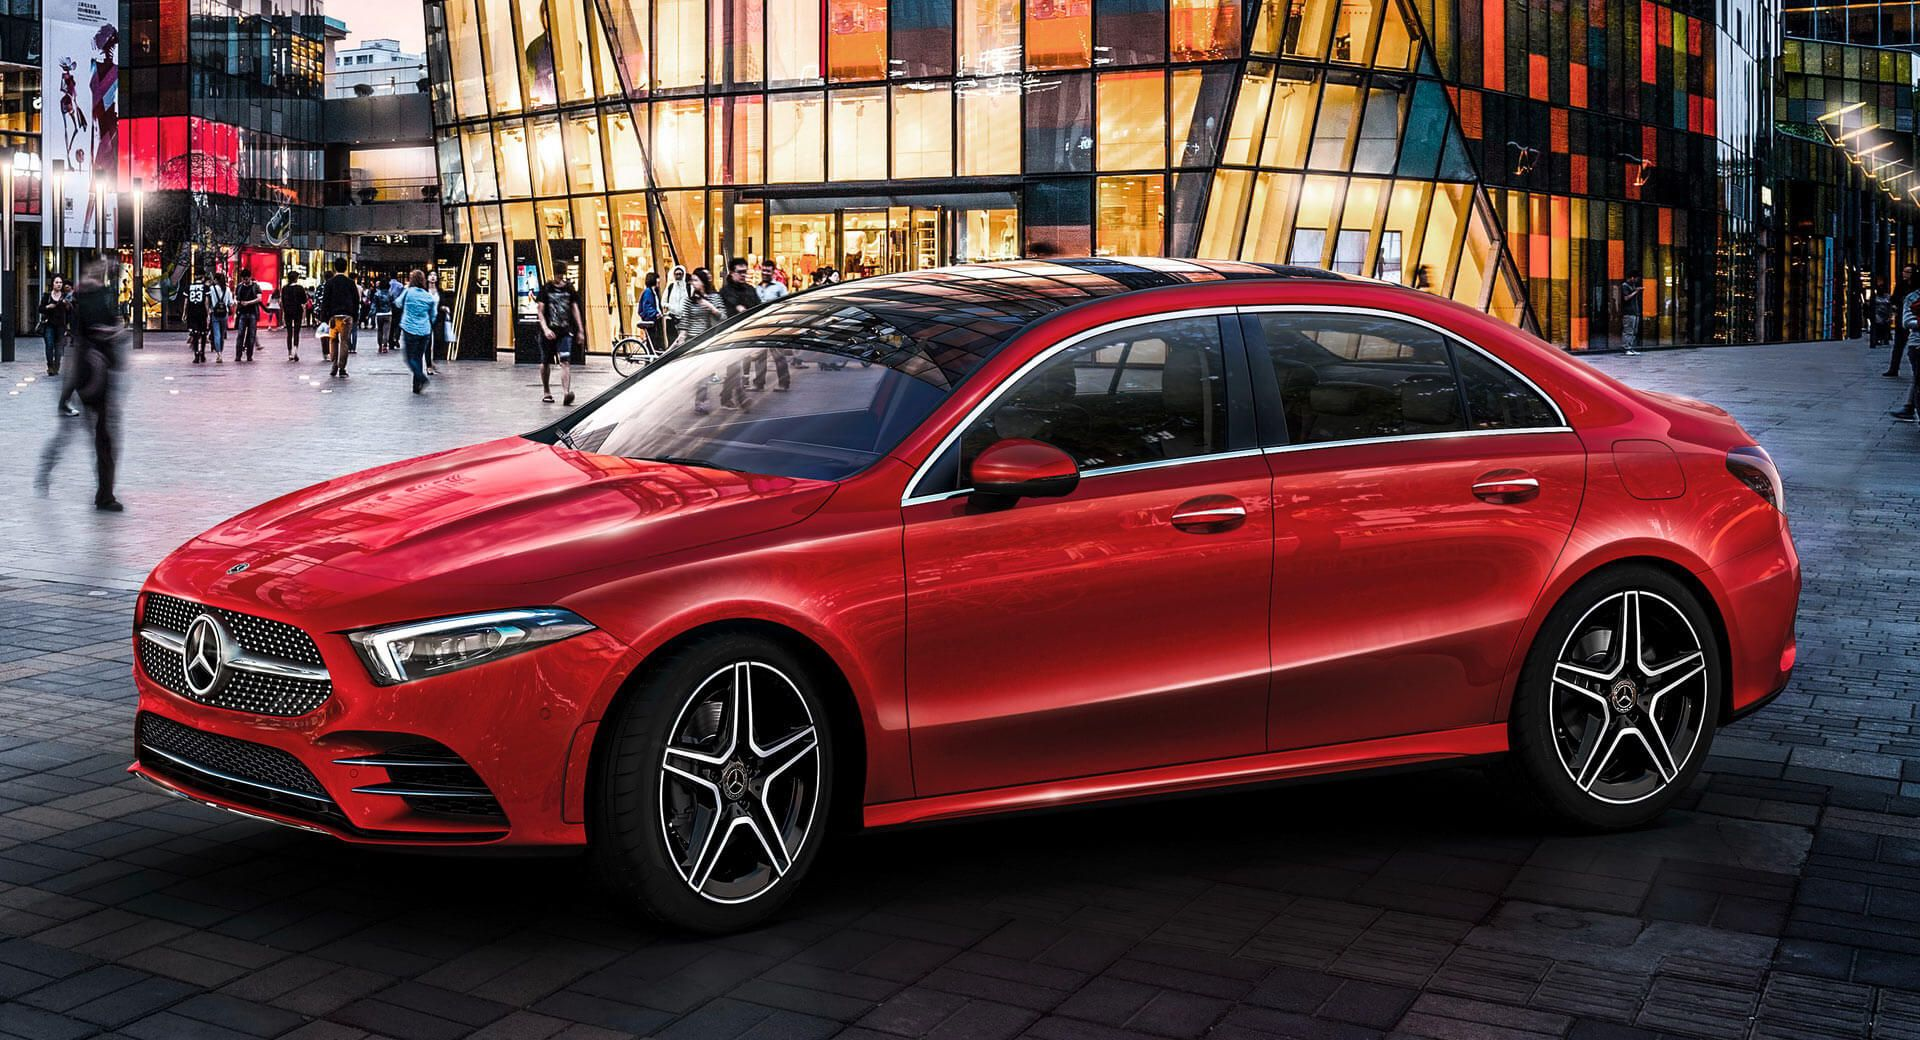 Mercedes A Class L Sedan Breaks Cover At Auto China 2018